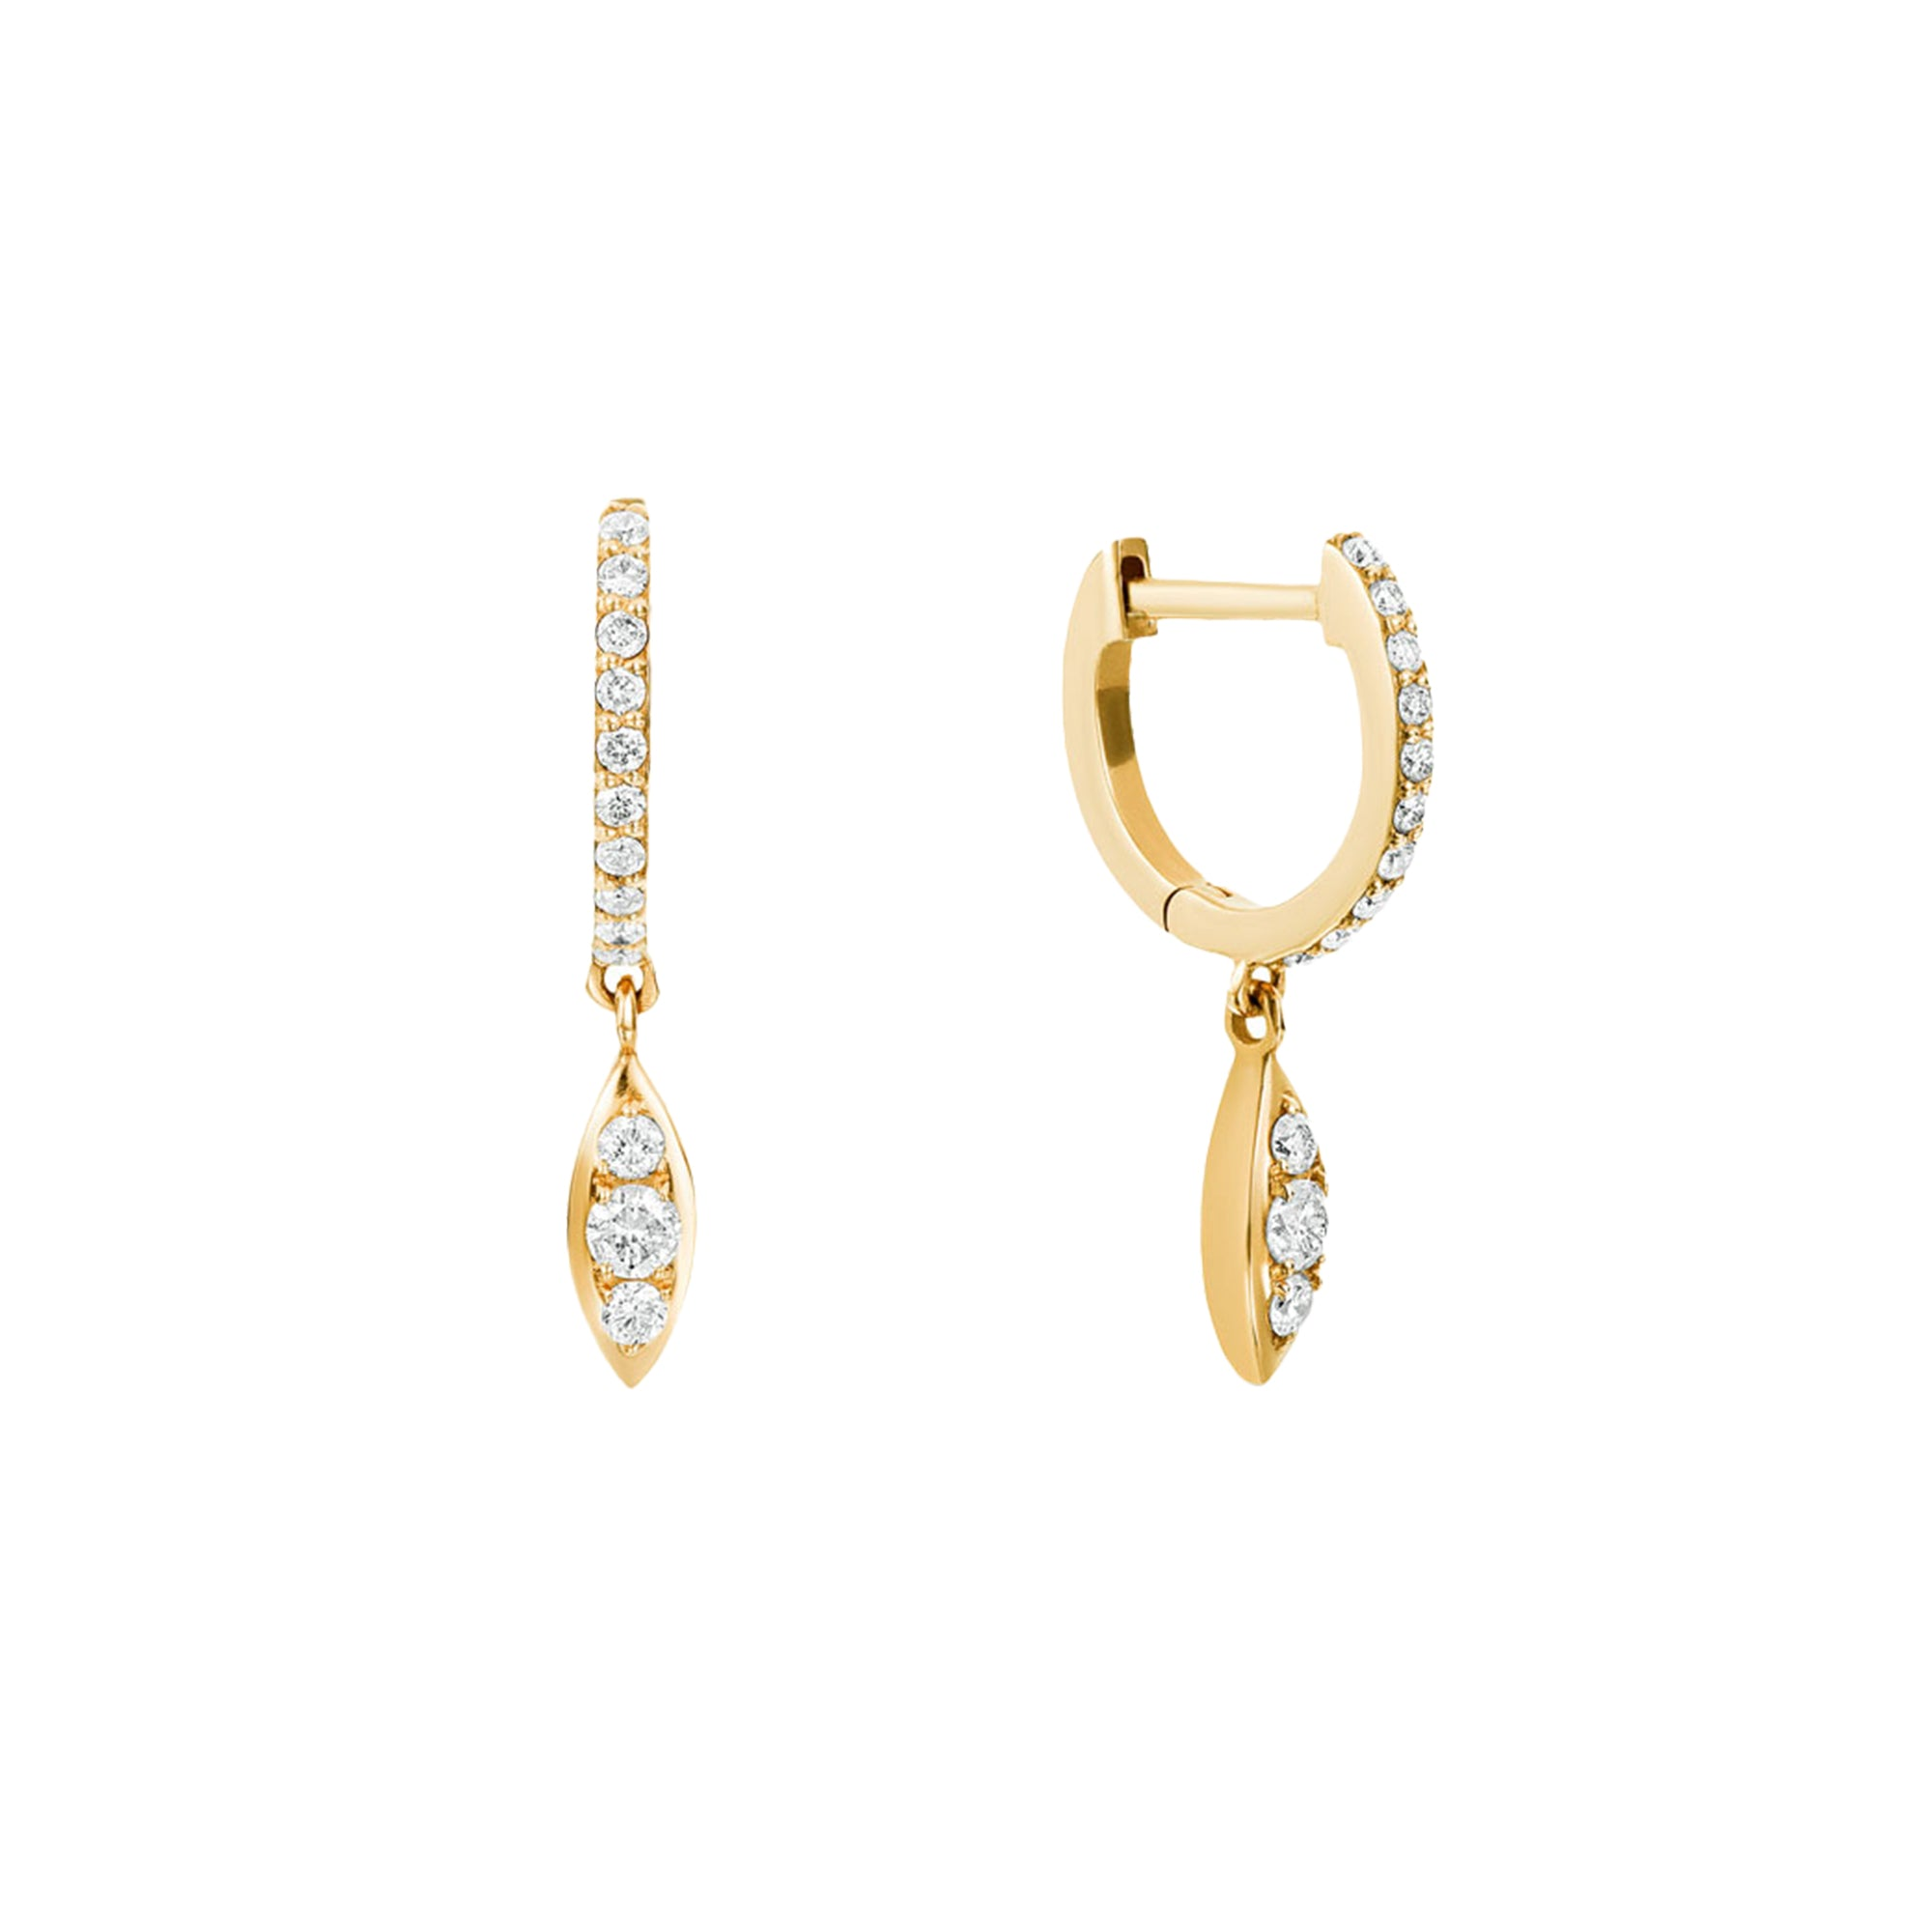 Gold & White Diamond Delilah Earrings by Carbon & Hyde for Broken English Jewelry